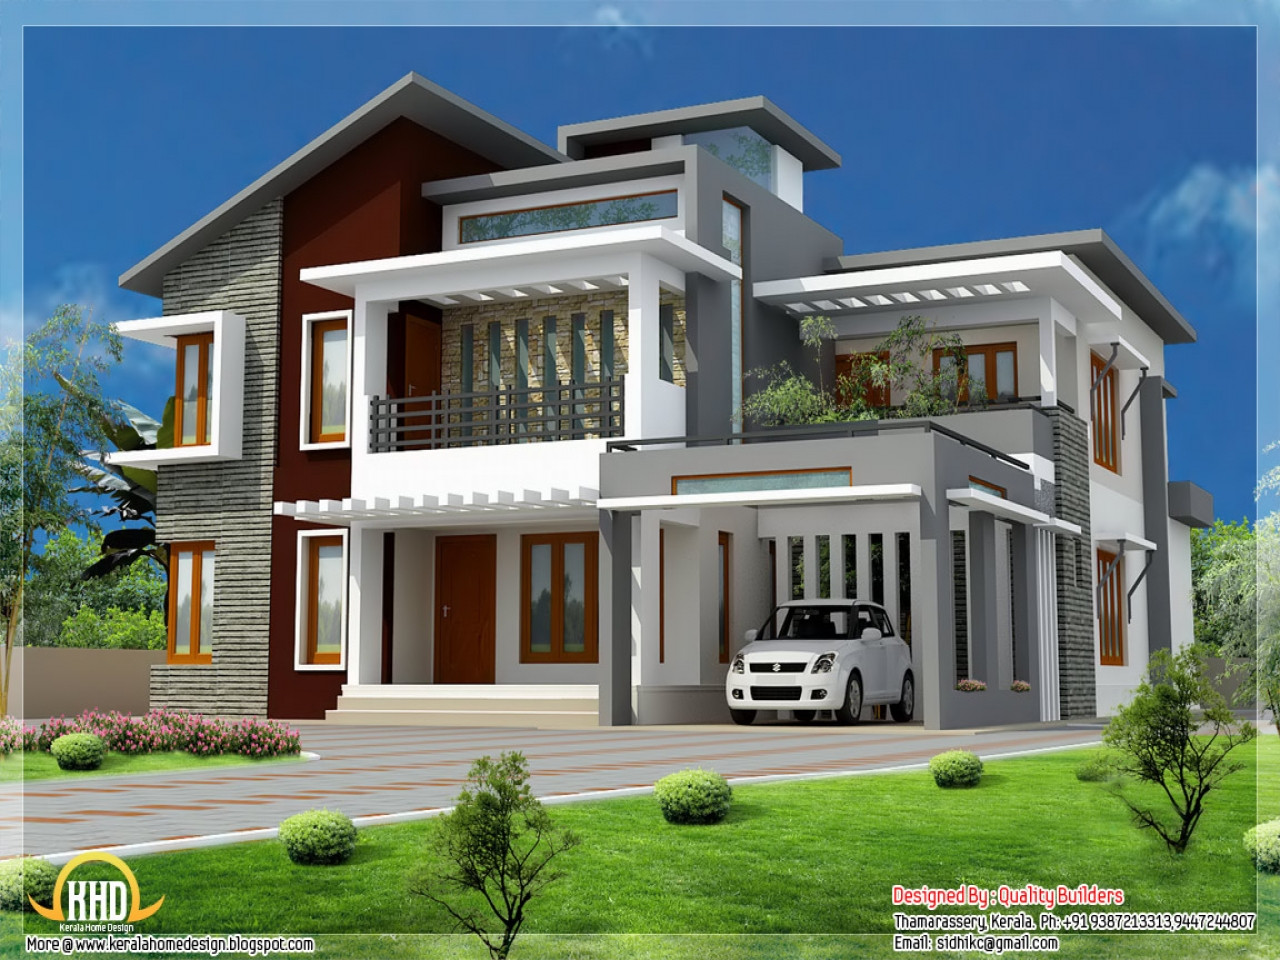 Illustrate Home Designs Modern Style House Design Modern Tropical House Design